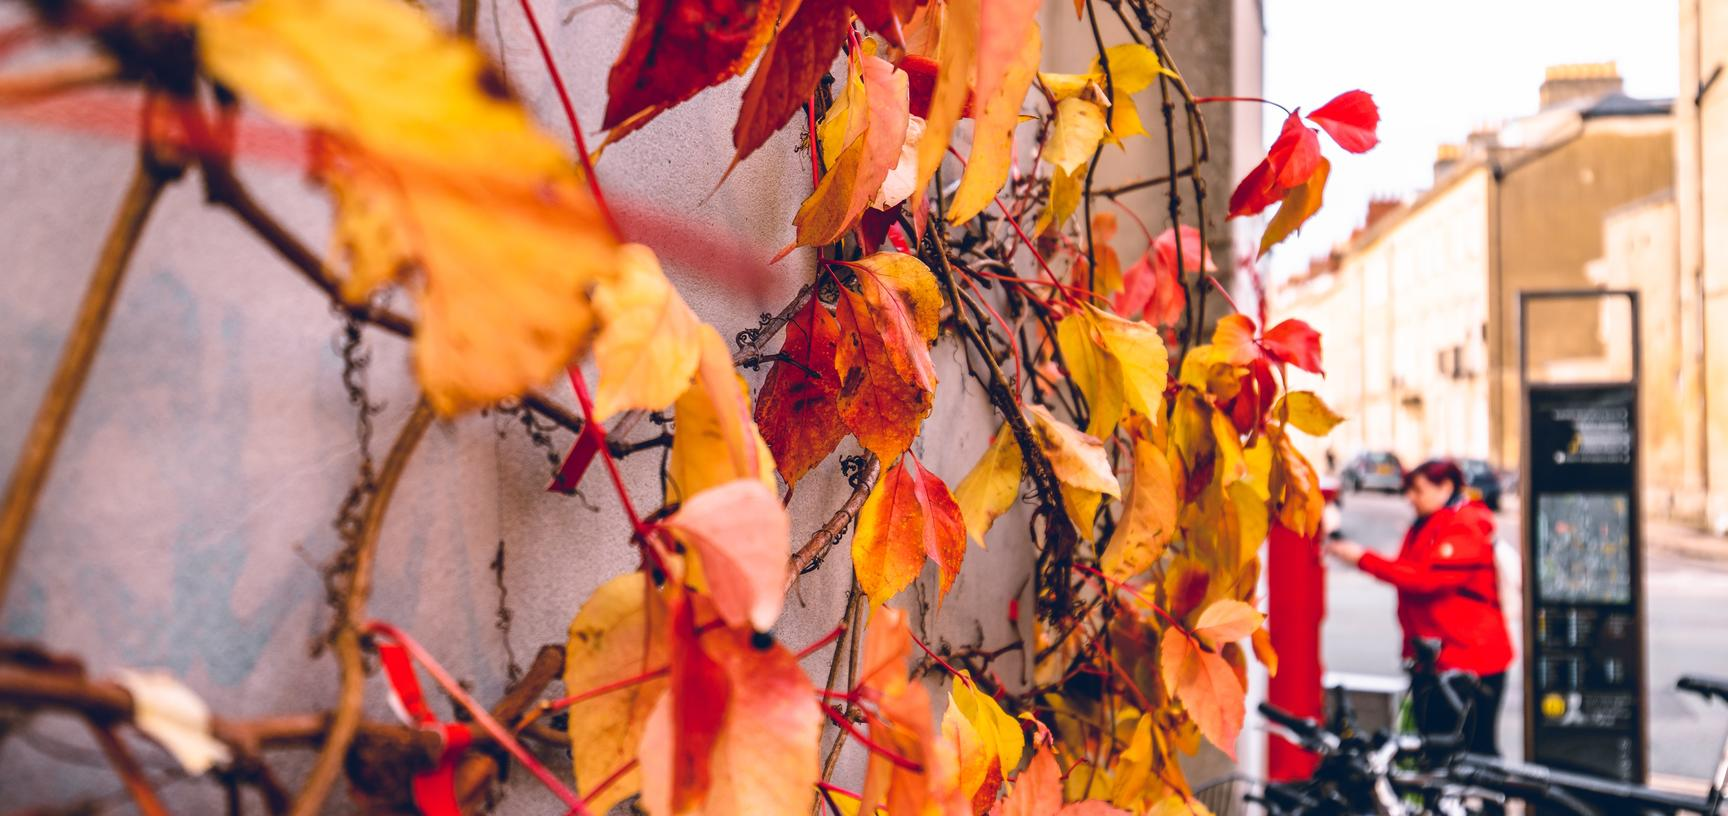 autumn colour in oxford photo by james coleman on unsplash